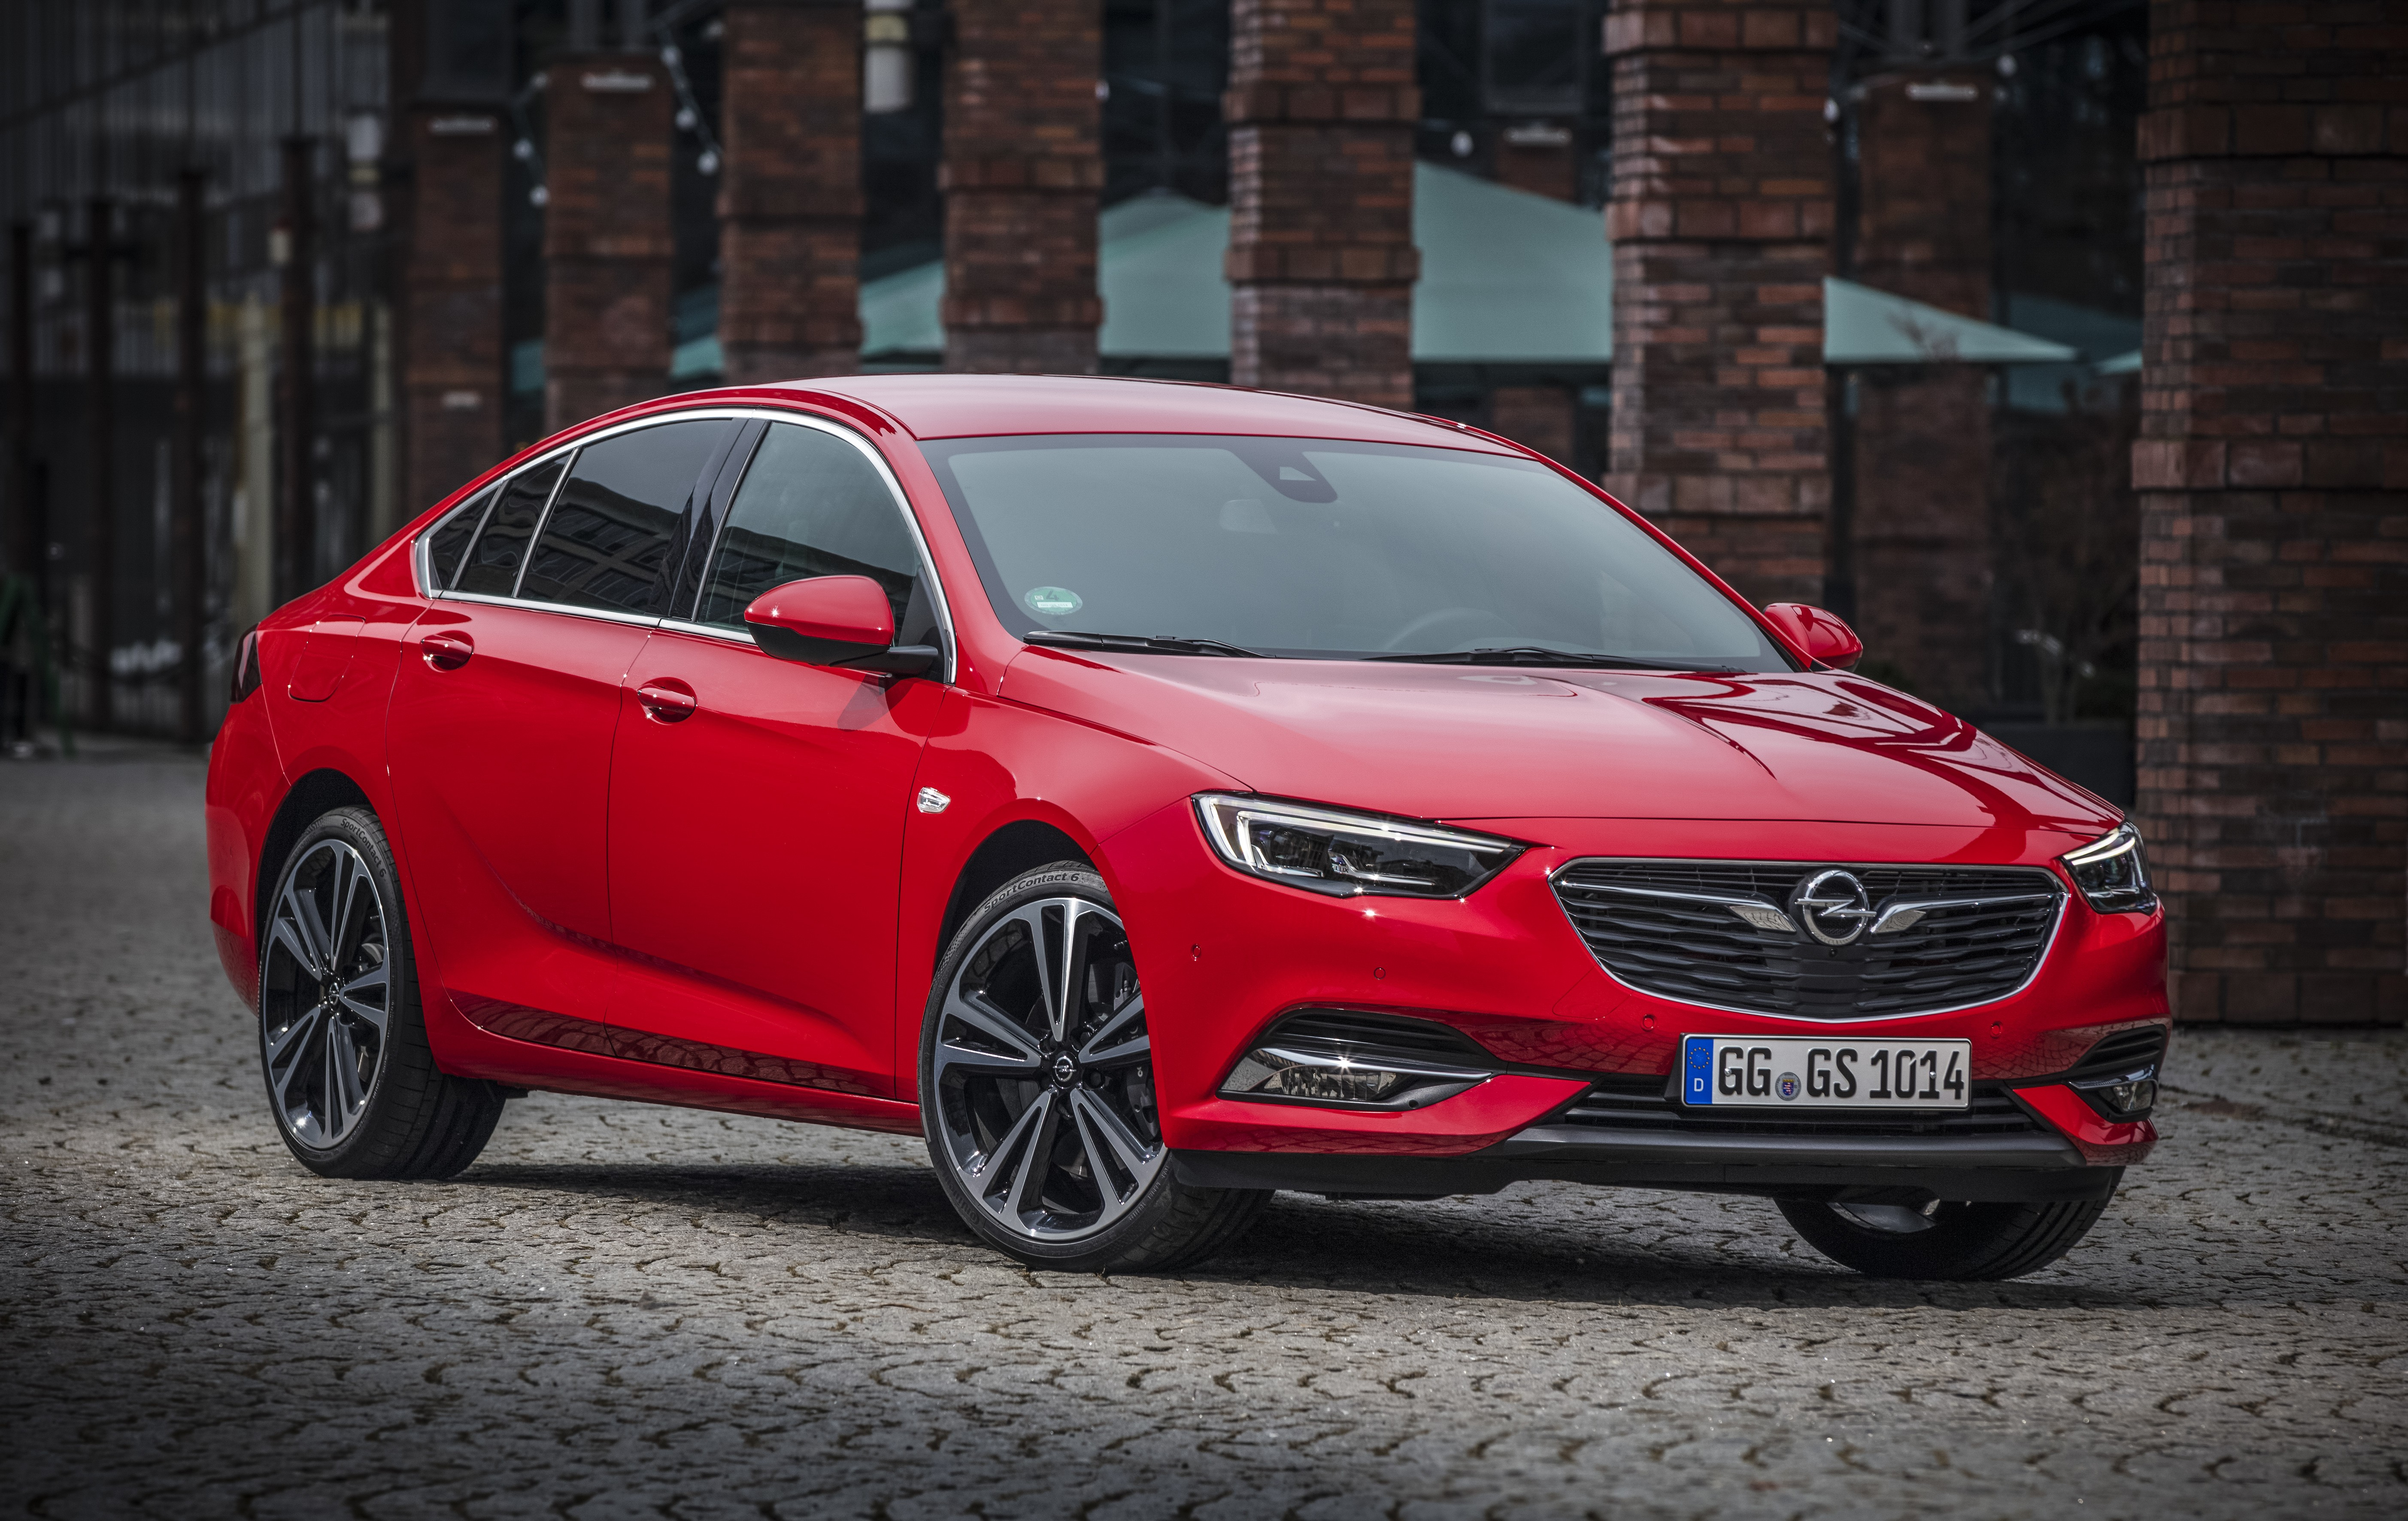 opel insignia gets agr approved ventilated seats. Black Bedroom Furniture Sets. Home Design Ideas